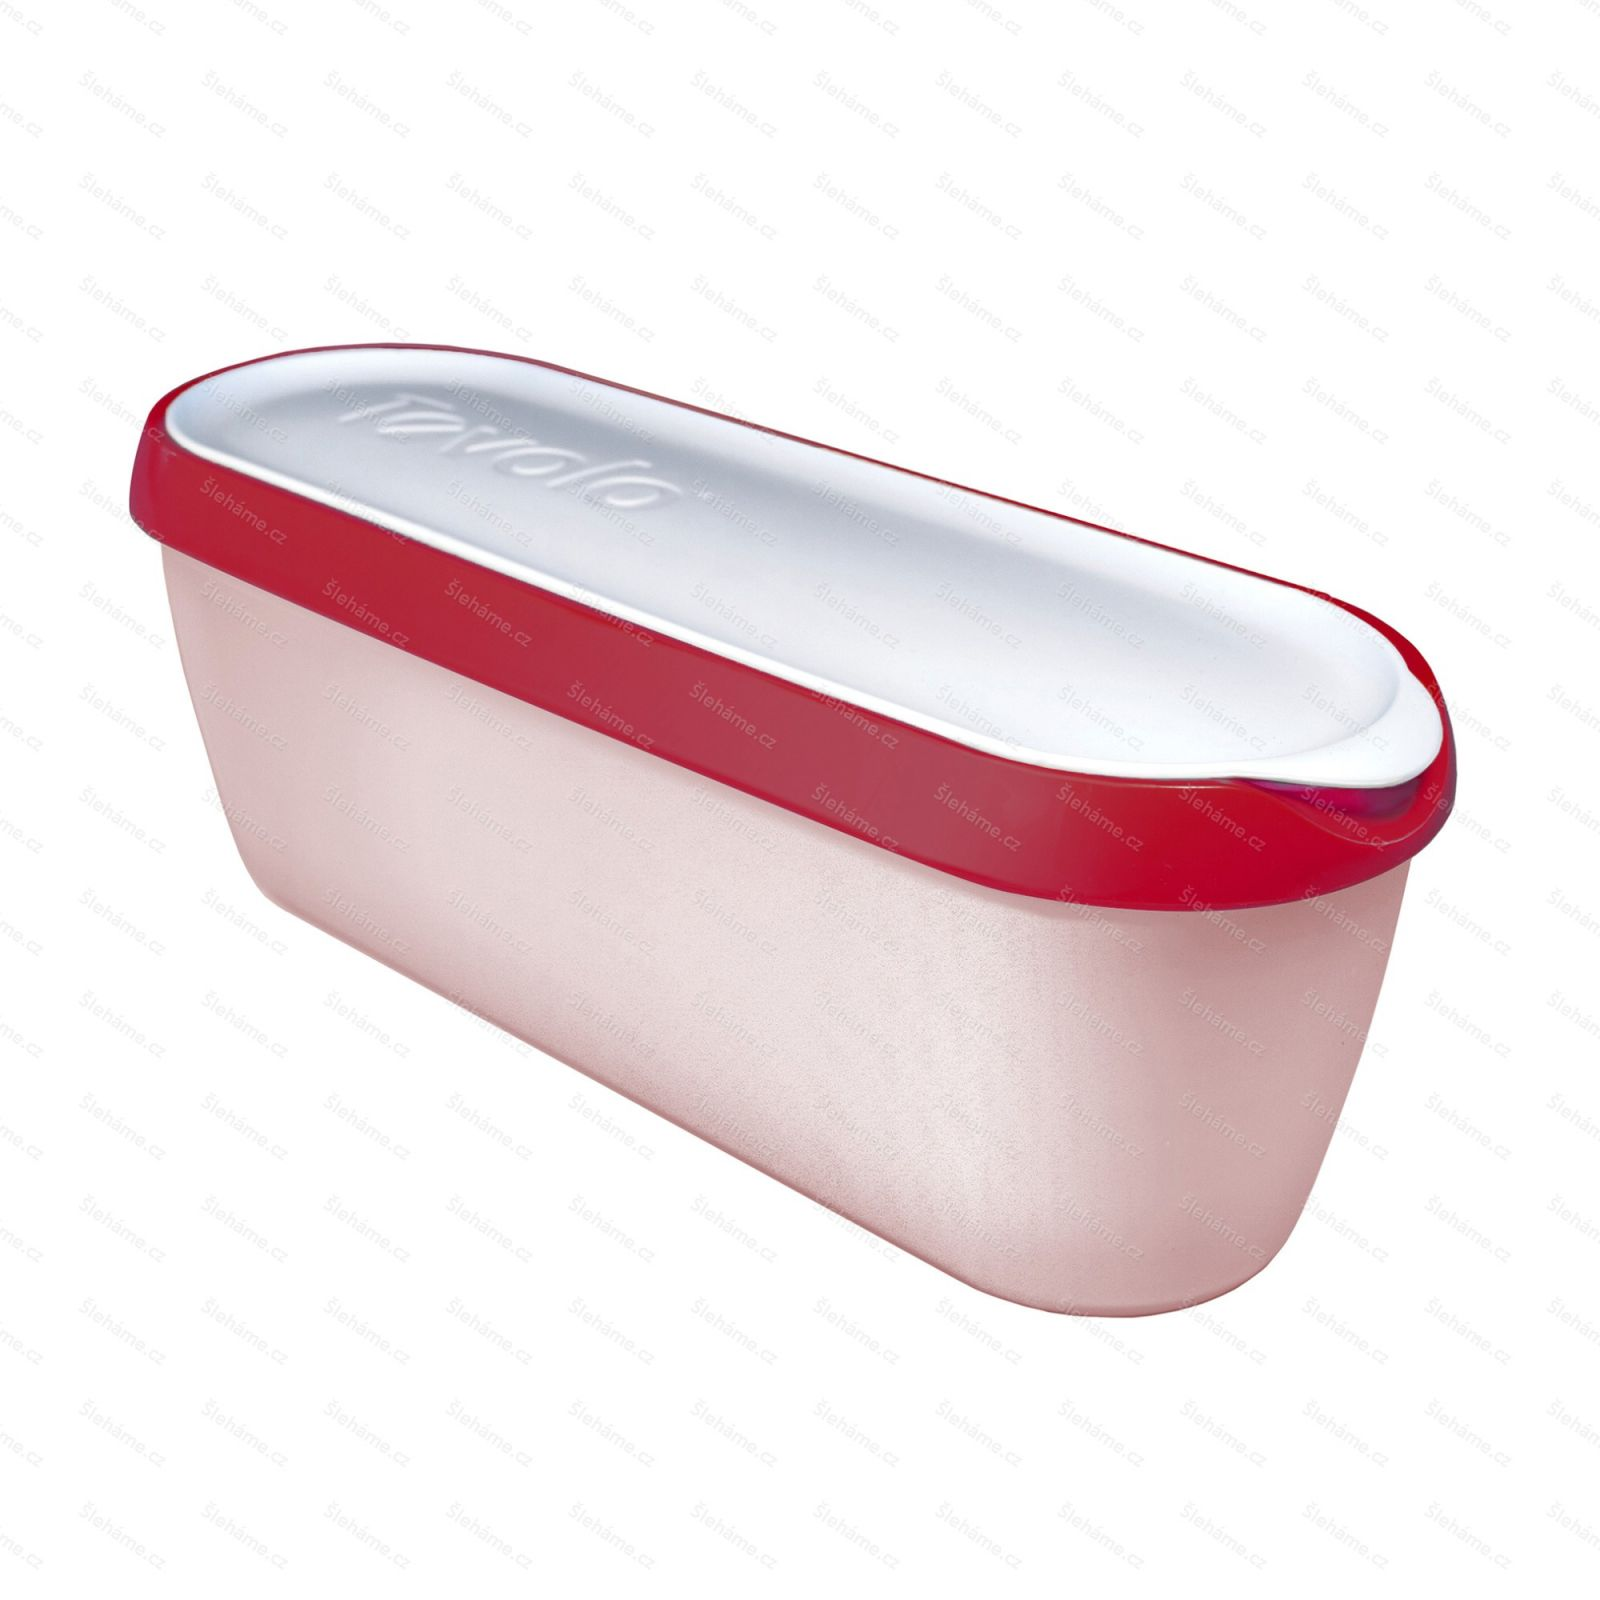 Ice cream tub Tovolo GLIDE-A-SCOOP 1.4 l, cayenne